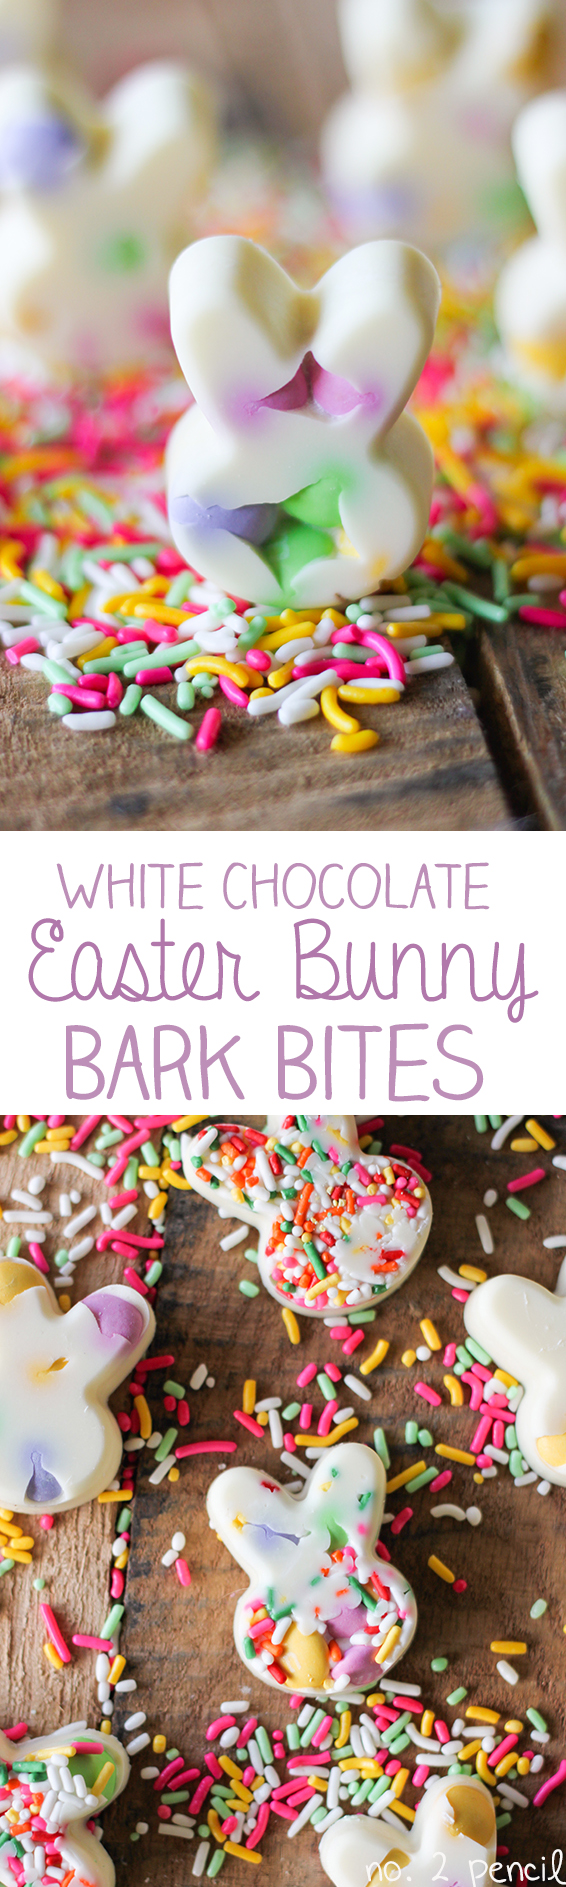 White Chocolate Easter Bunny Bark Bites